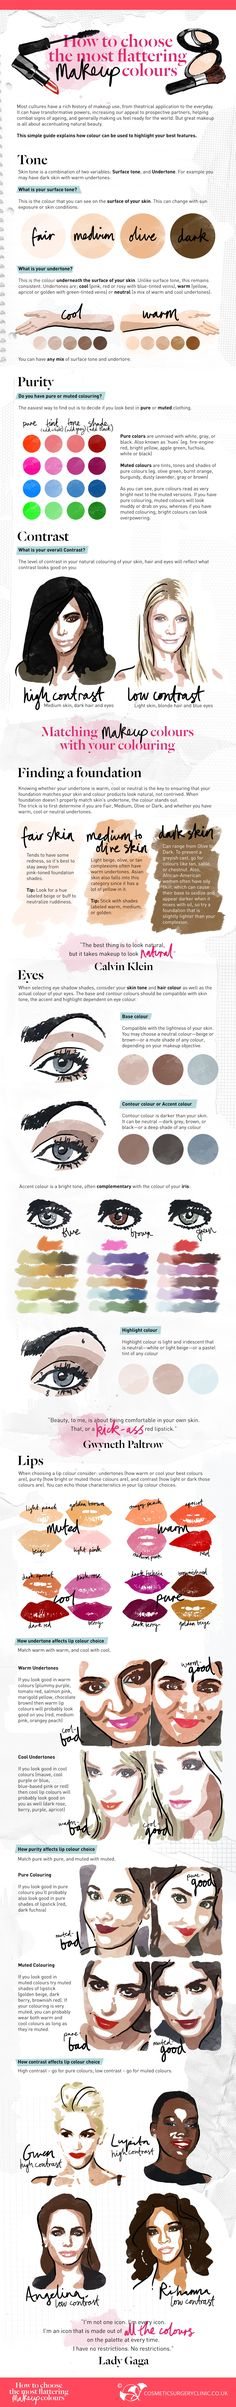 How to Choose the Most Flattering Make-Up Colours: Thought you all might find this interesting. : MakeupAddiction